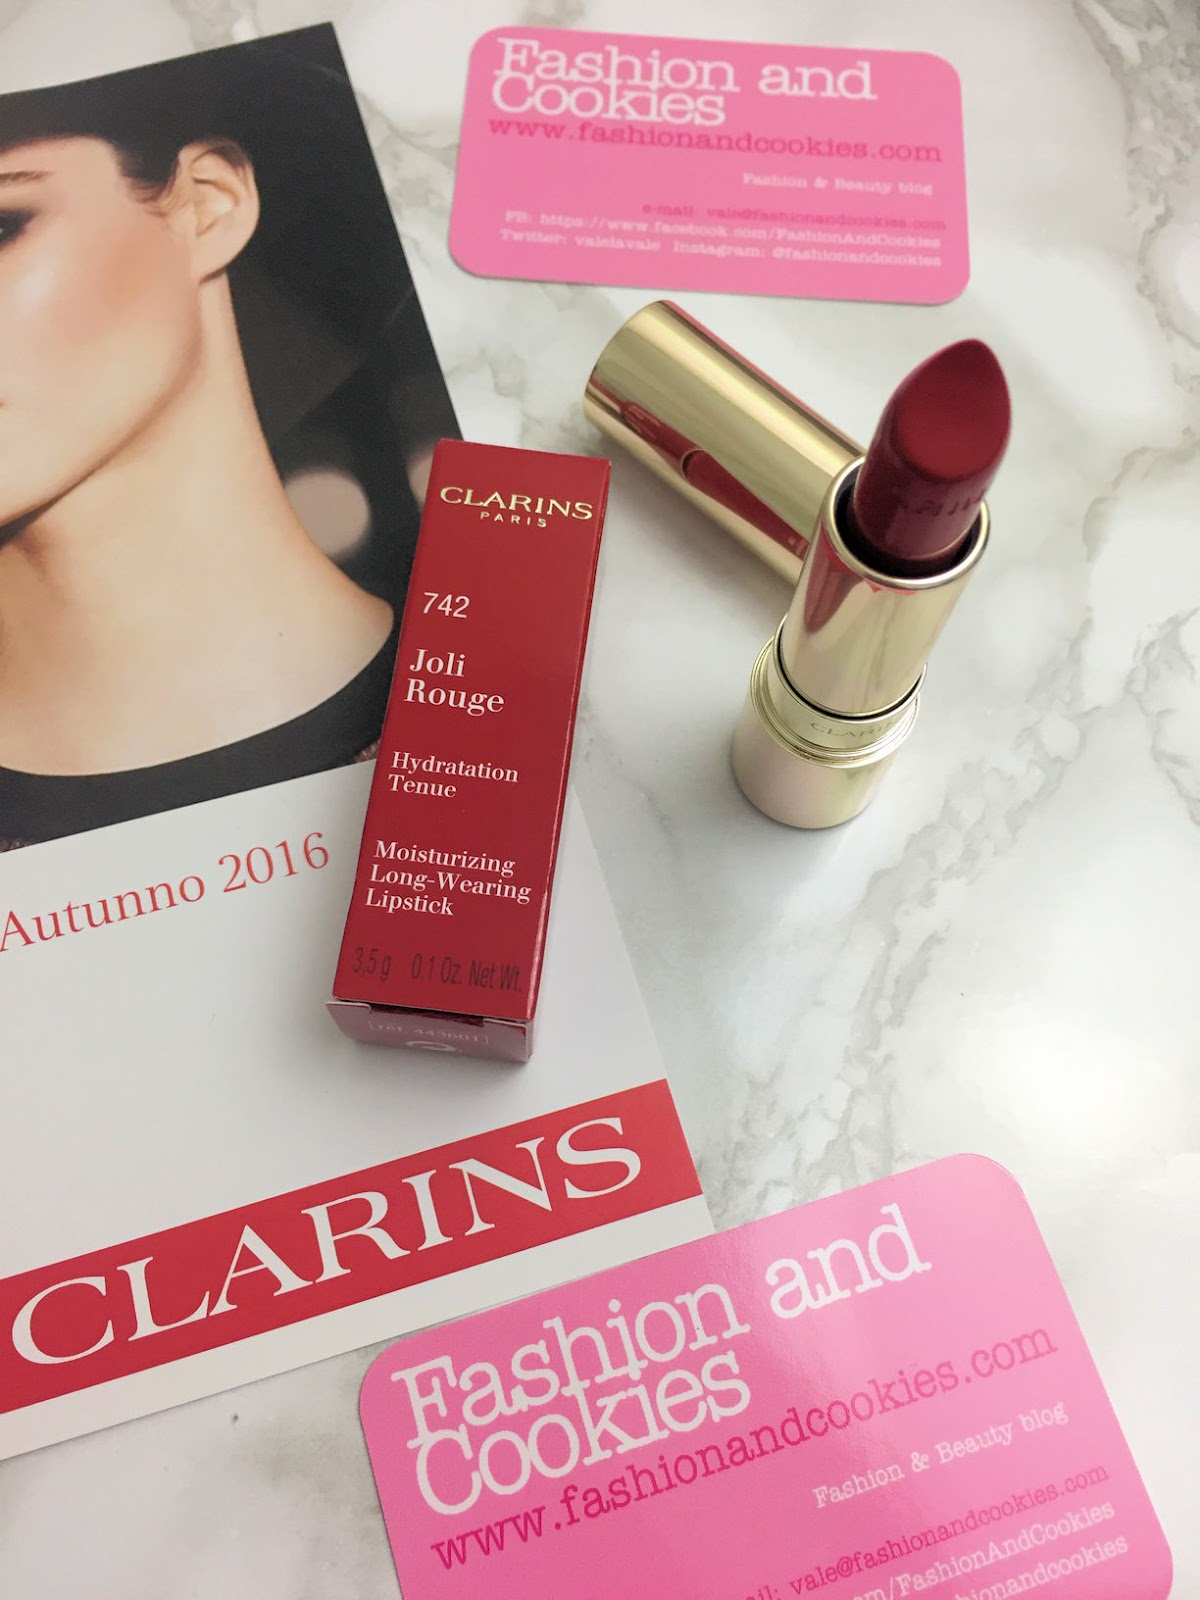 Clarins Joli Rouge lipstick on Fashion and Cookies beauty blog, beauty blogger